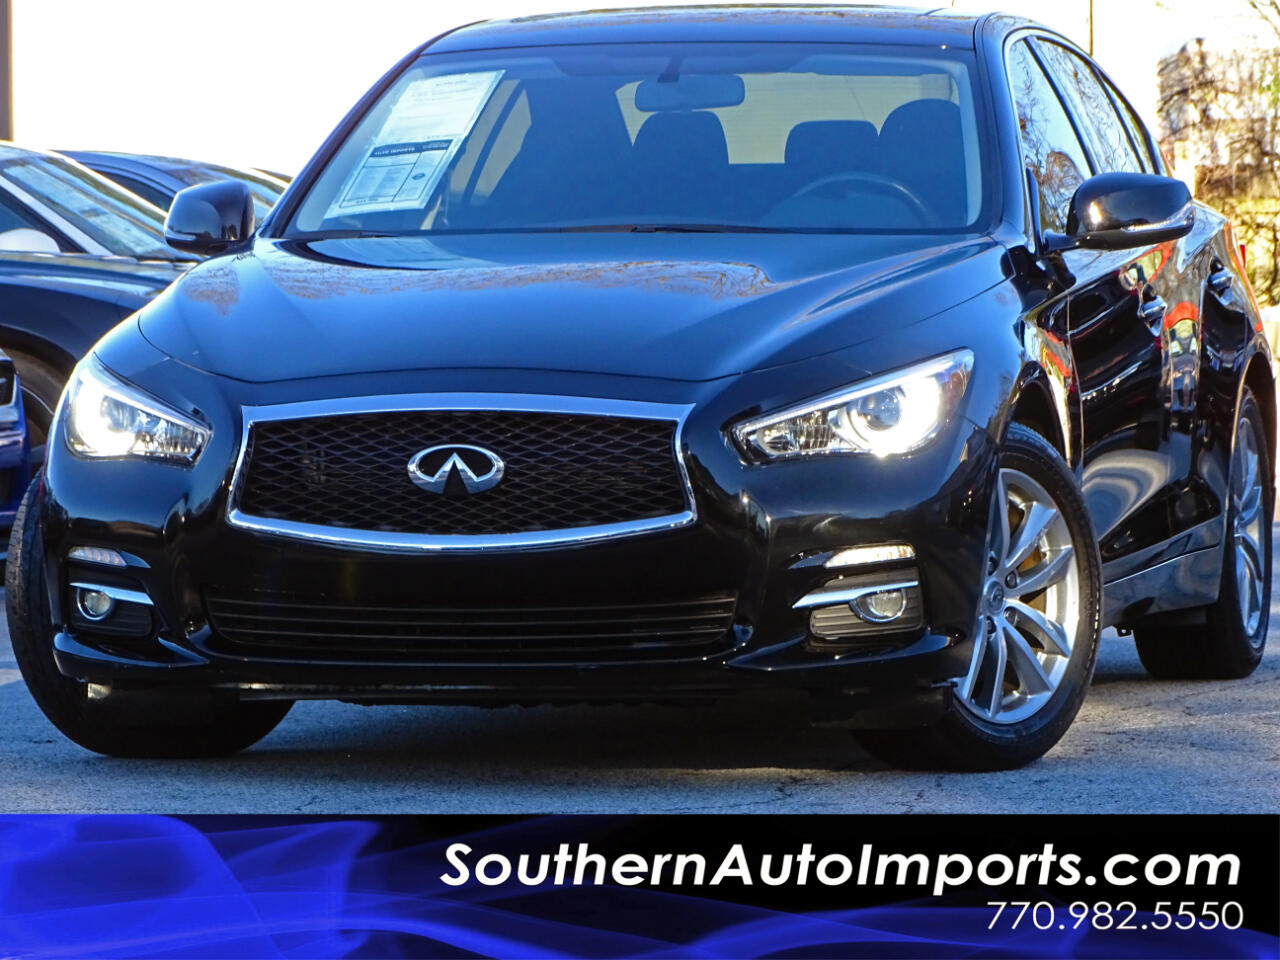 2015 Infiniti Q50 Premium AWD w/Back Up Camera Sunroof